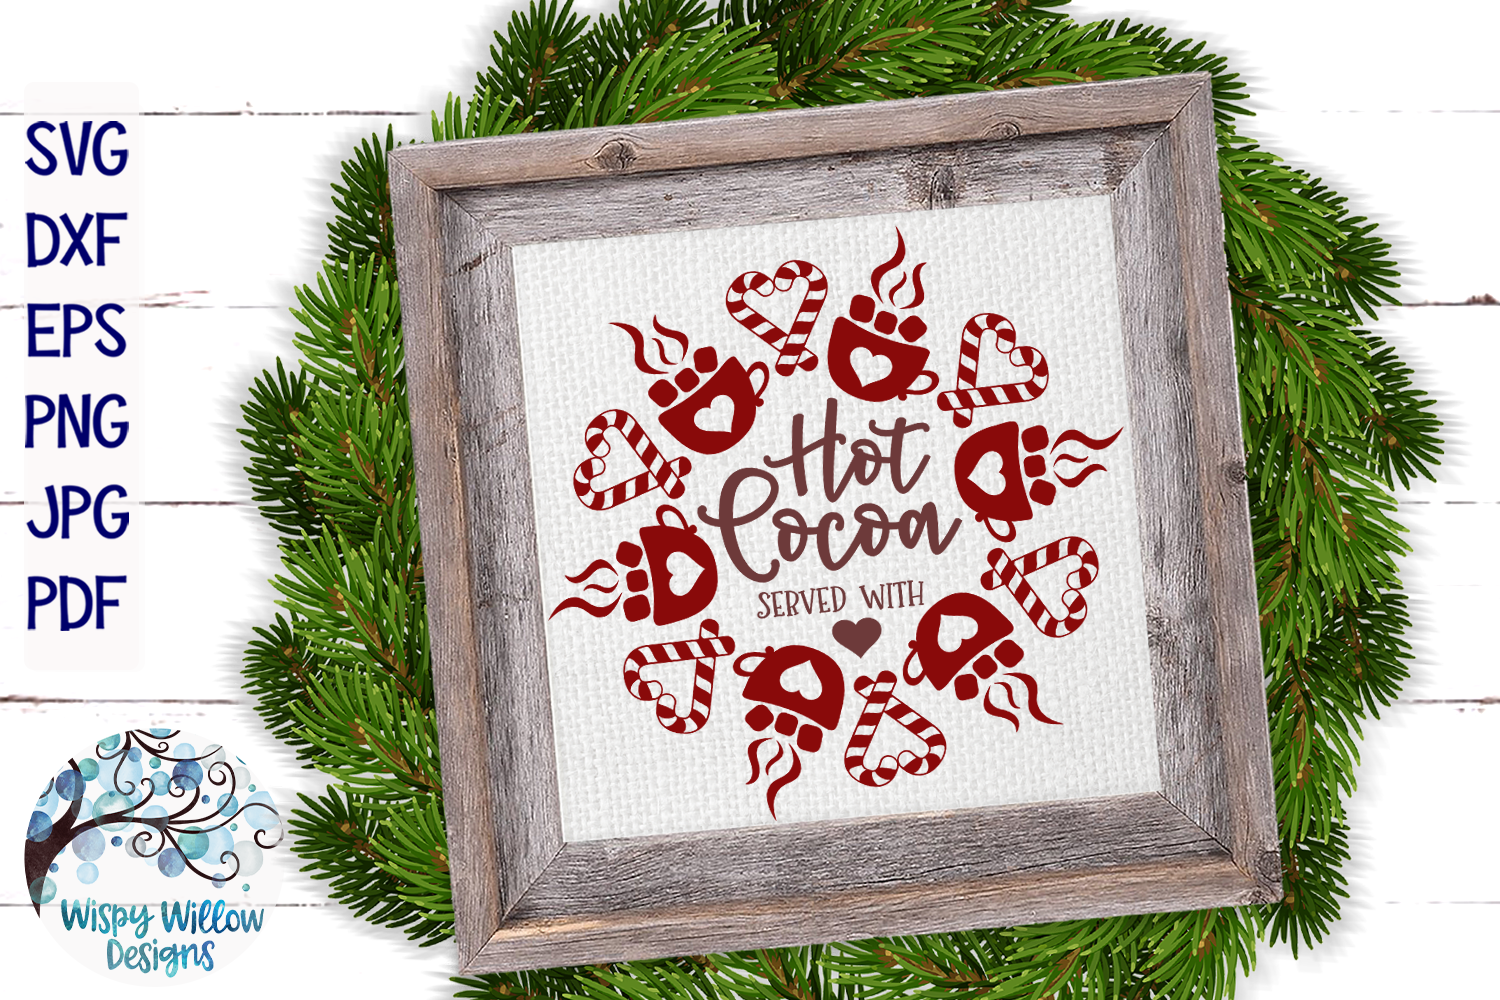 Hot Cocoa Served With Love SVG   Winter Sign SVG Cut File example image 1